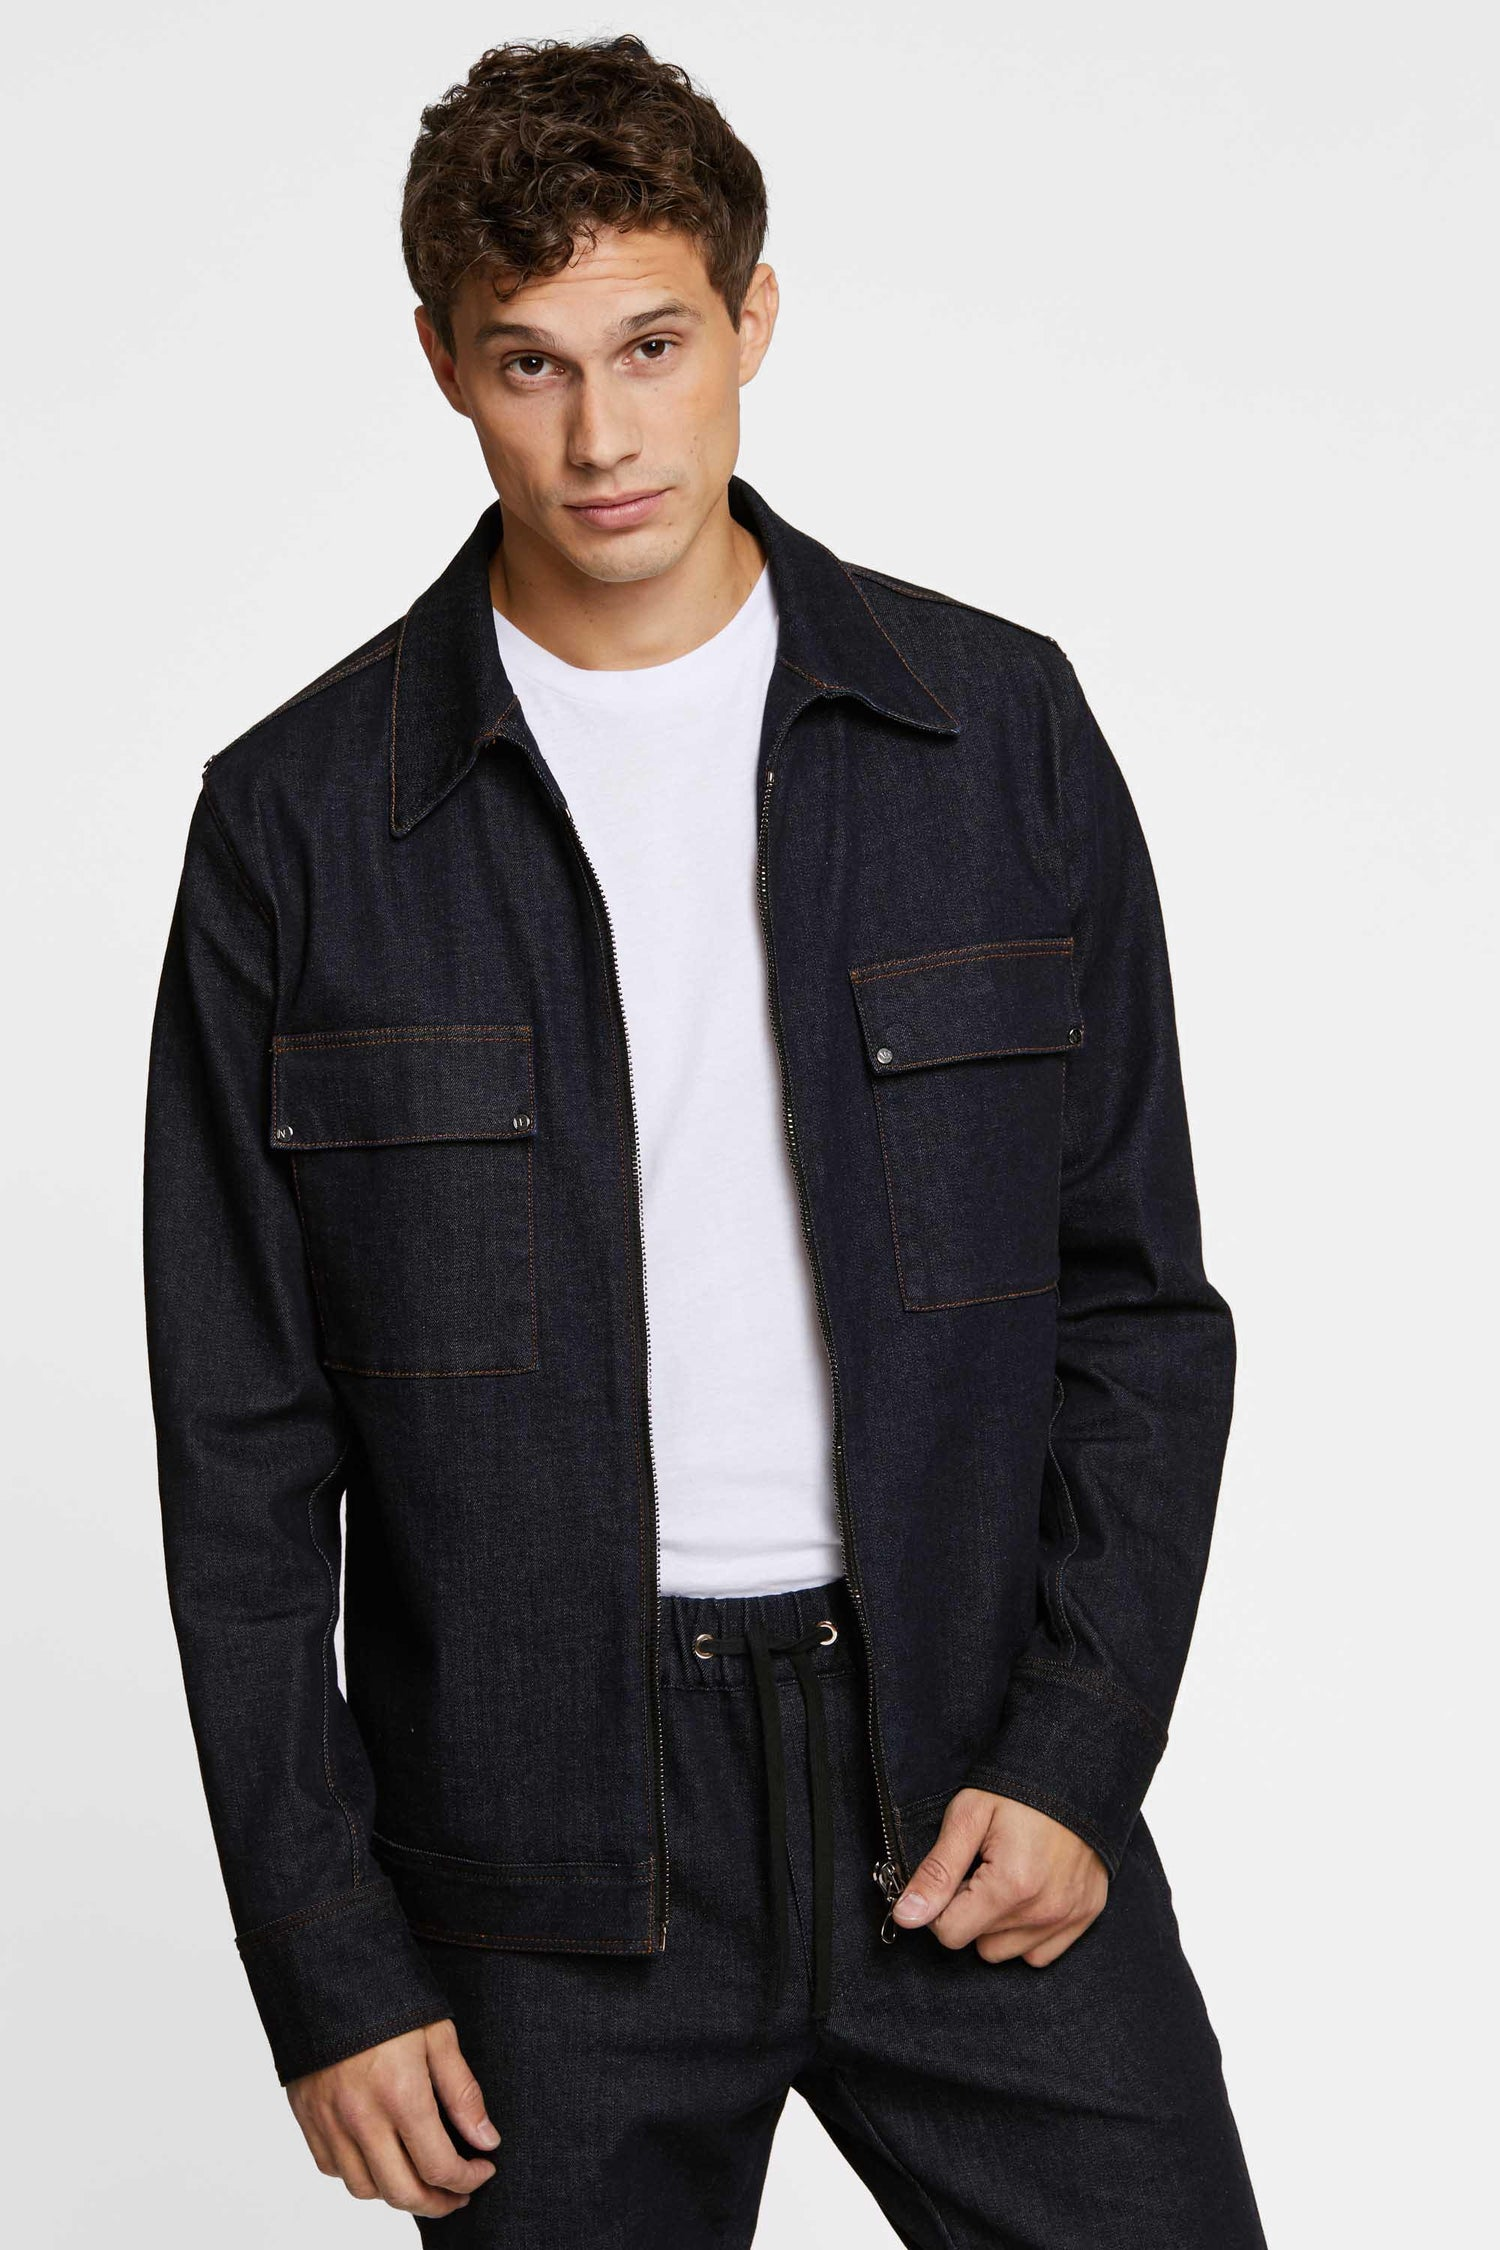 https://cdn.shopify.com/s/files/1/2973/0680/files/mens_raw_jacket.mp4?11295085260309446073